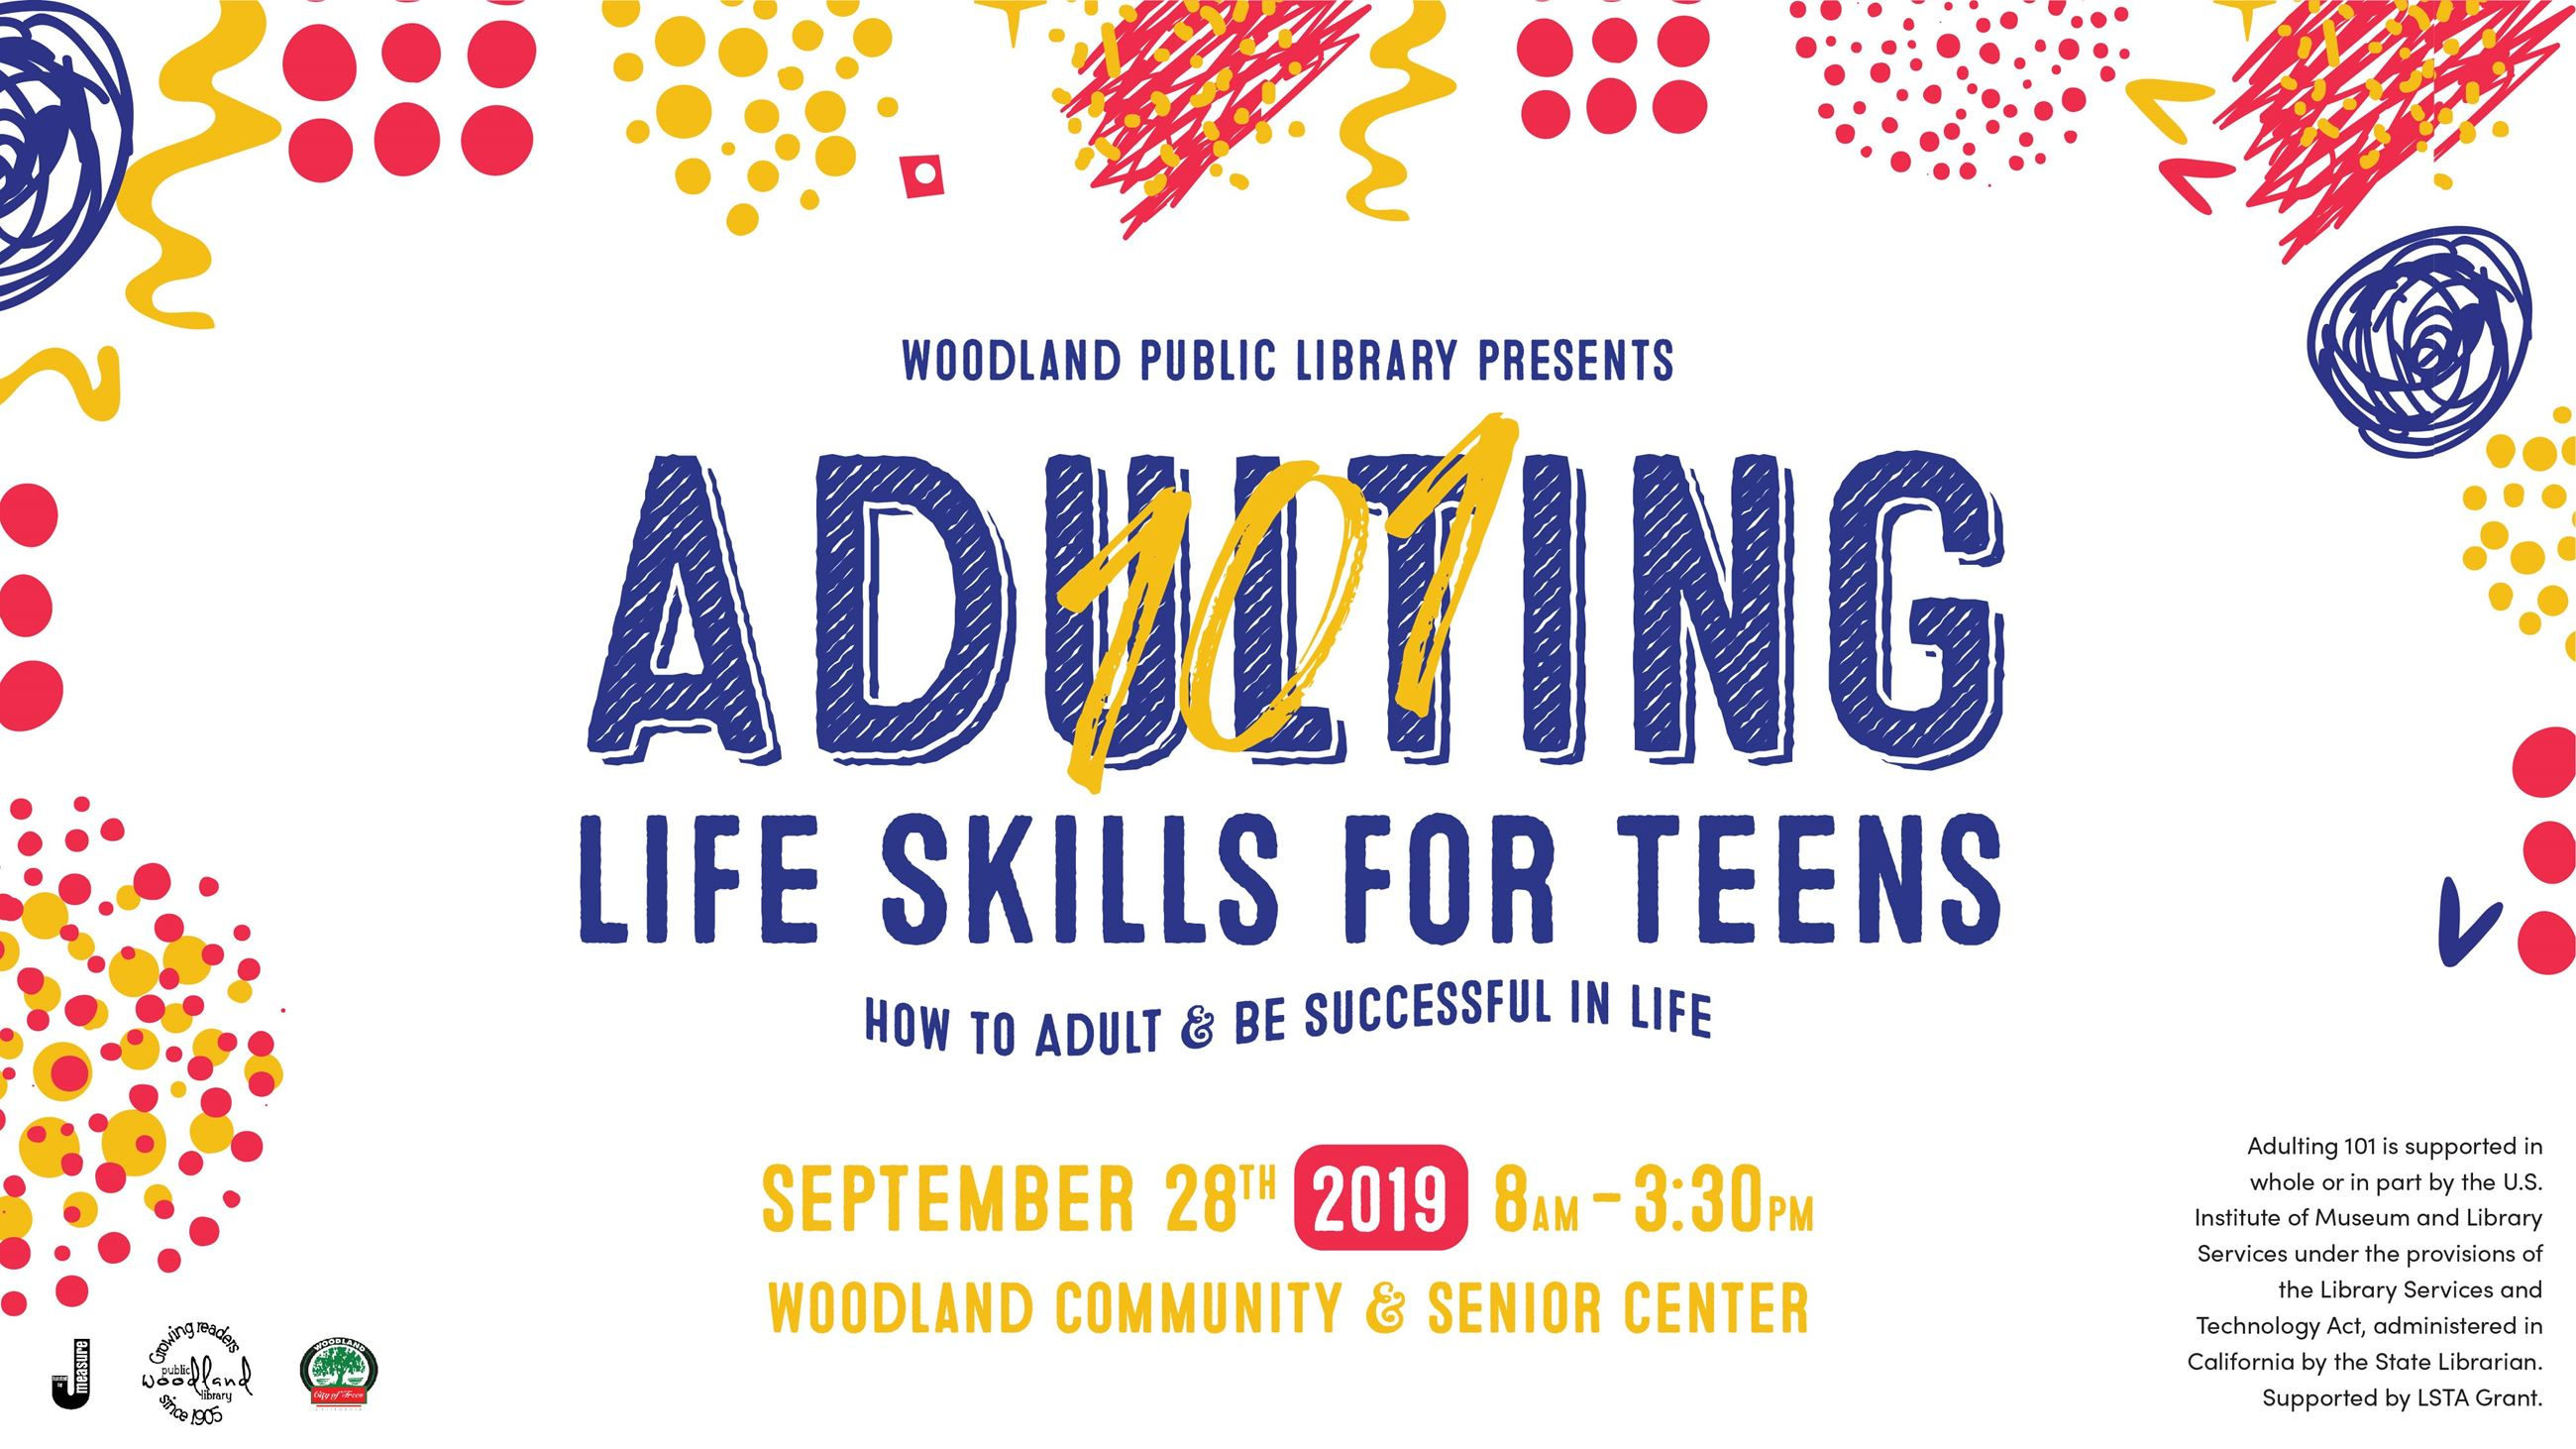 Adulting 101: Life Skills for Teens flyer